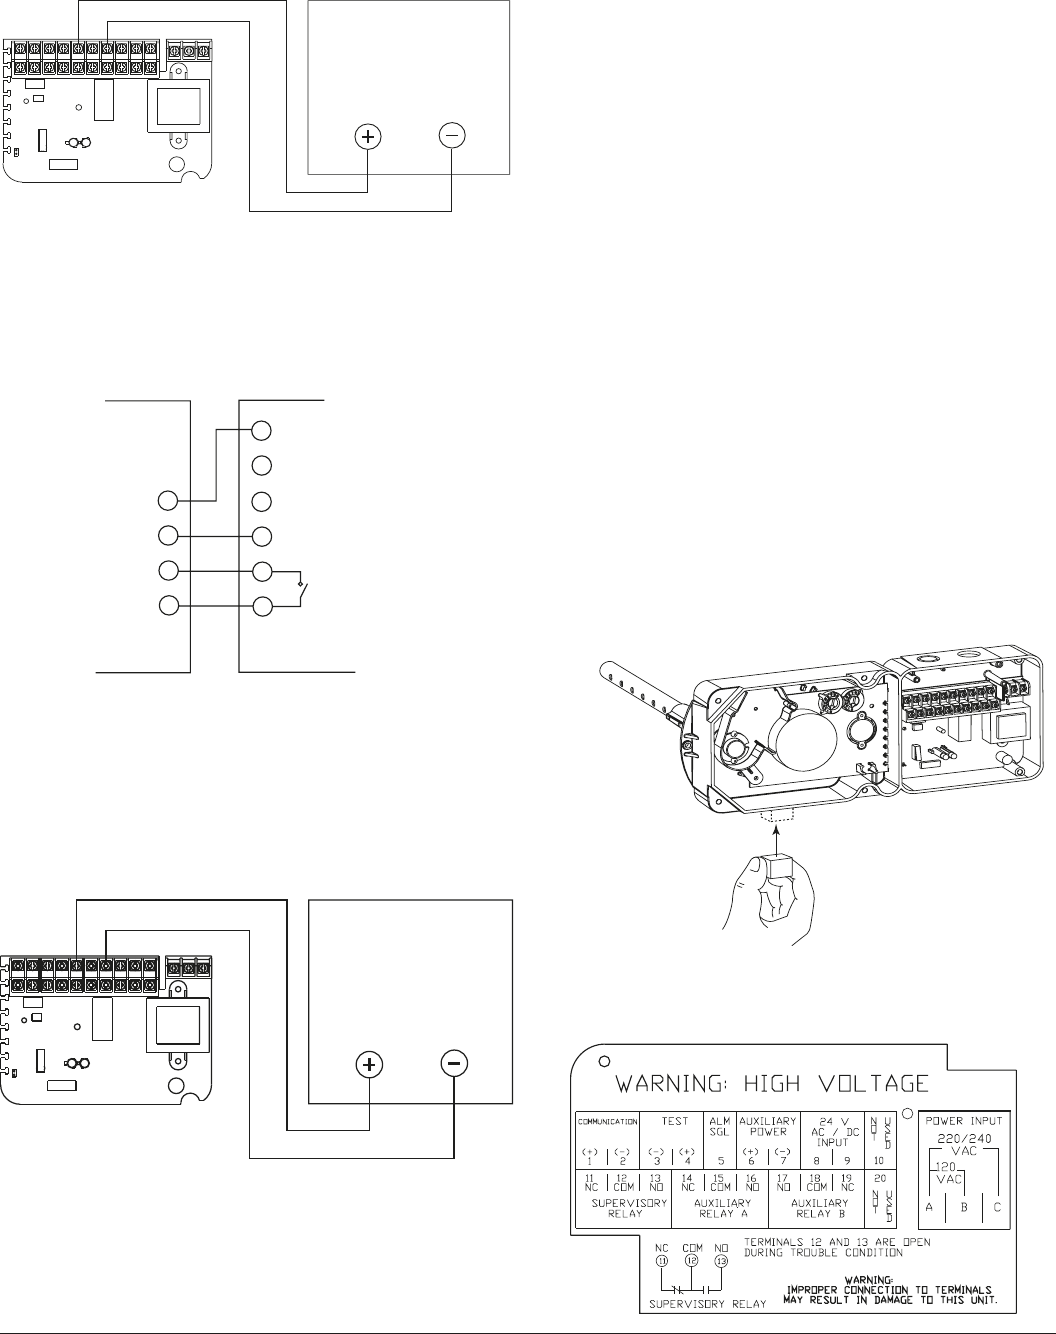 8483b56e 848c 4932 8d73 94b60800f0eb bg6 page 6 of system sensor smoke alarm dh200rpl user guide rts451 wiring diagram at webbmarketing.co